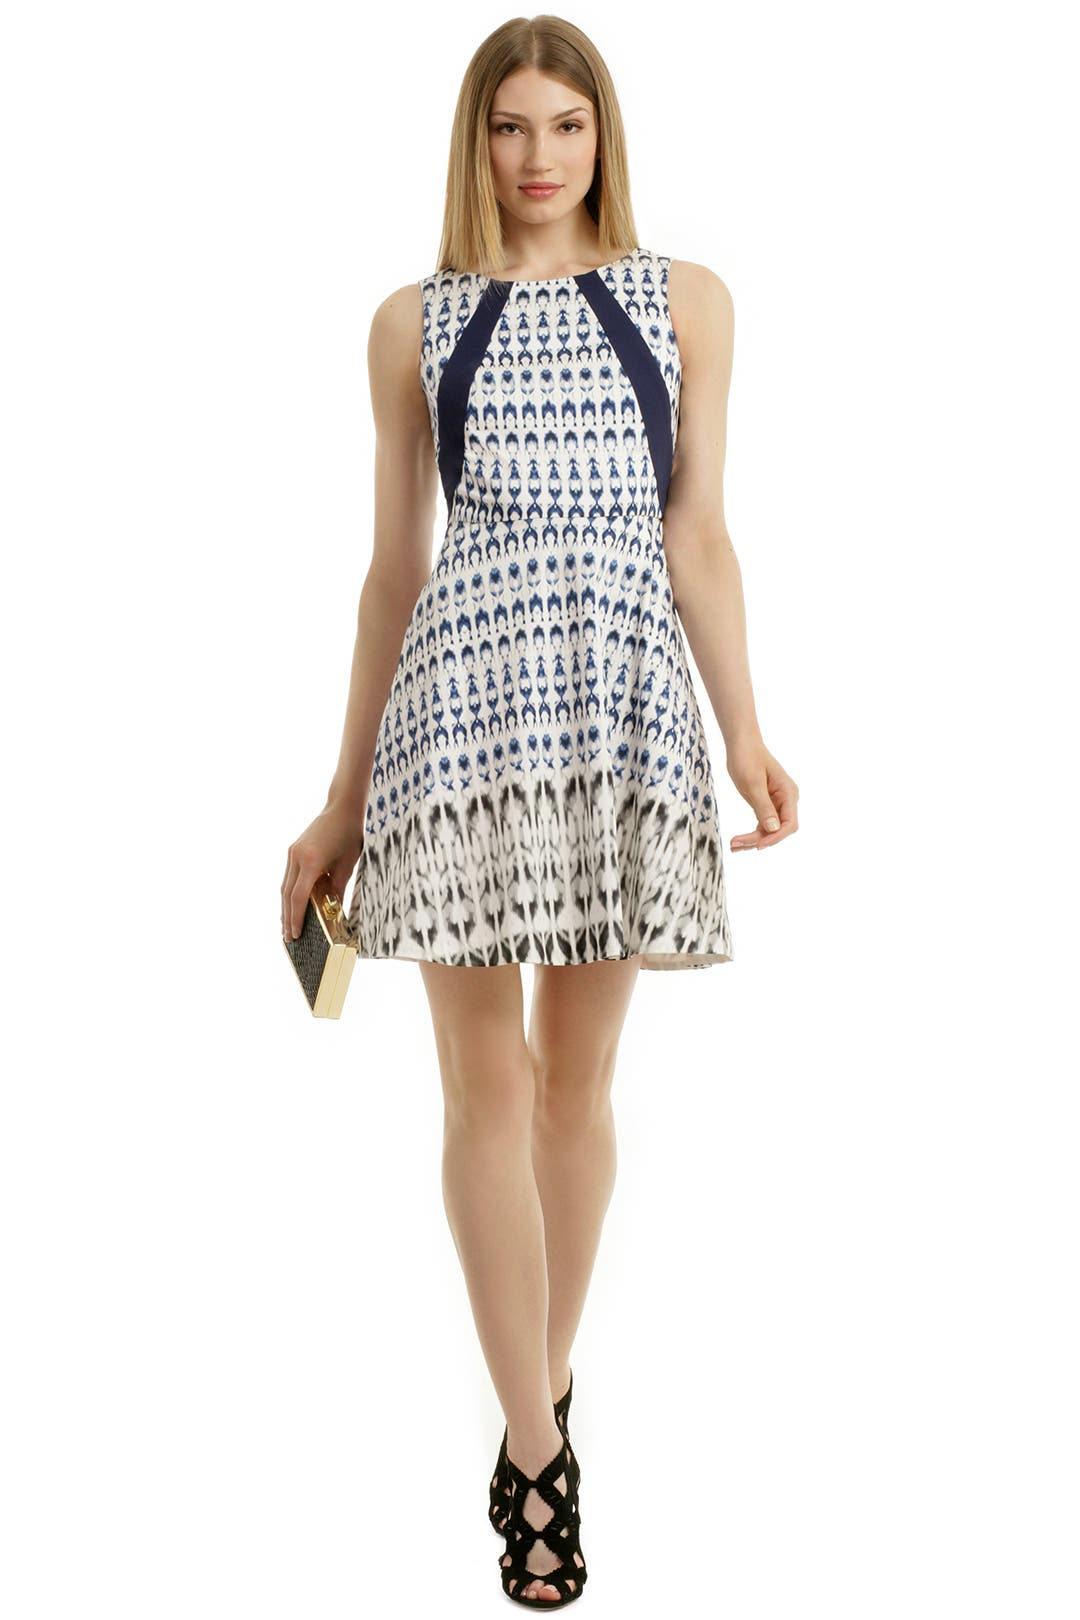 Indigo Spectrum Dress by Rachel Roy